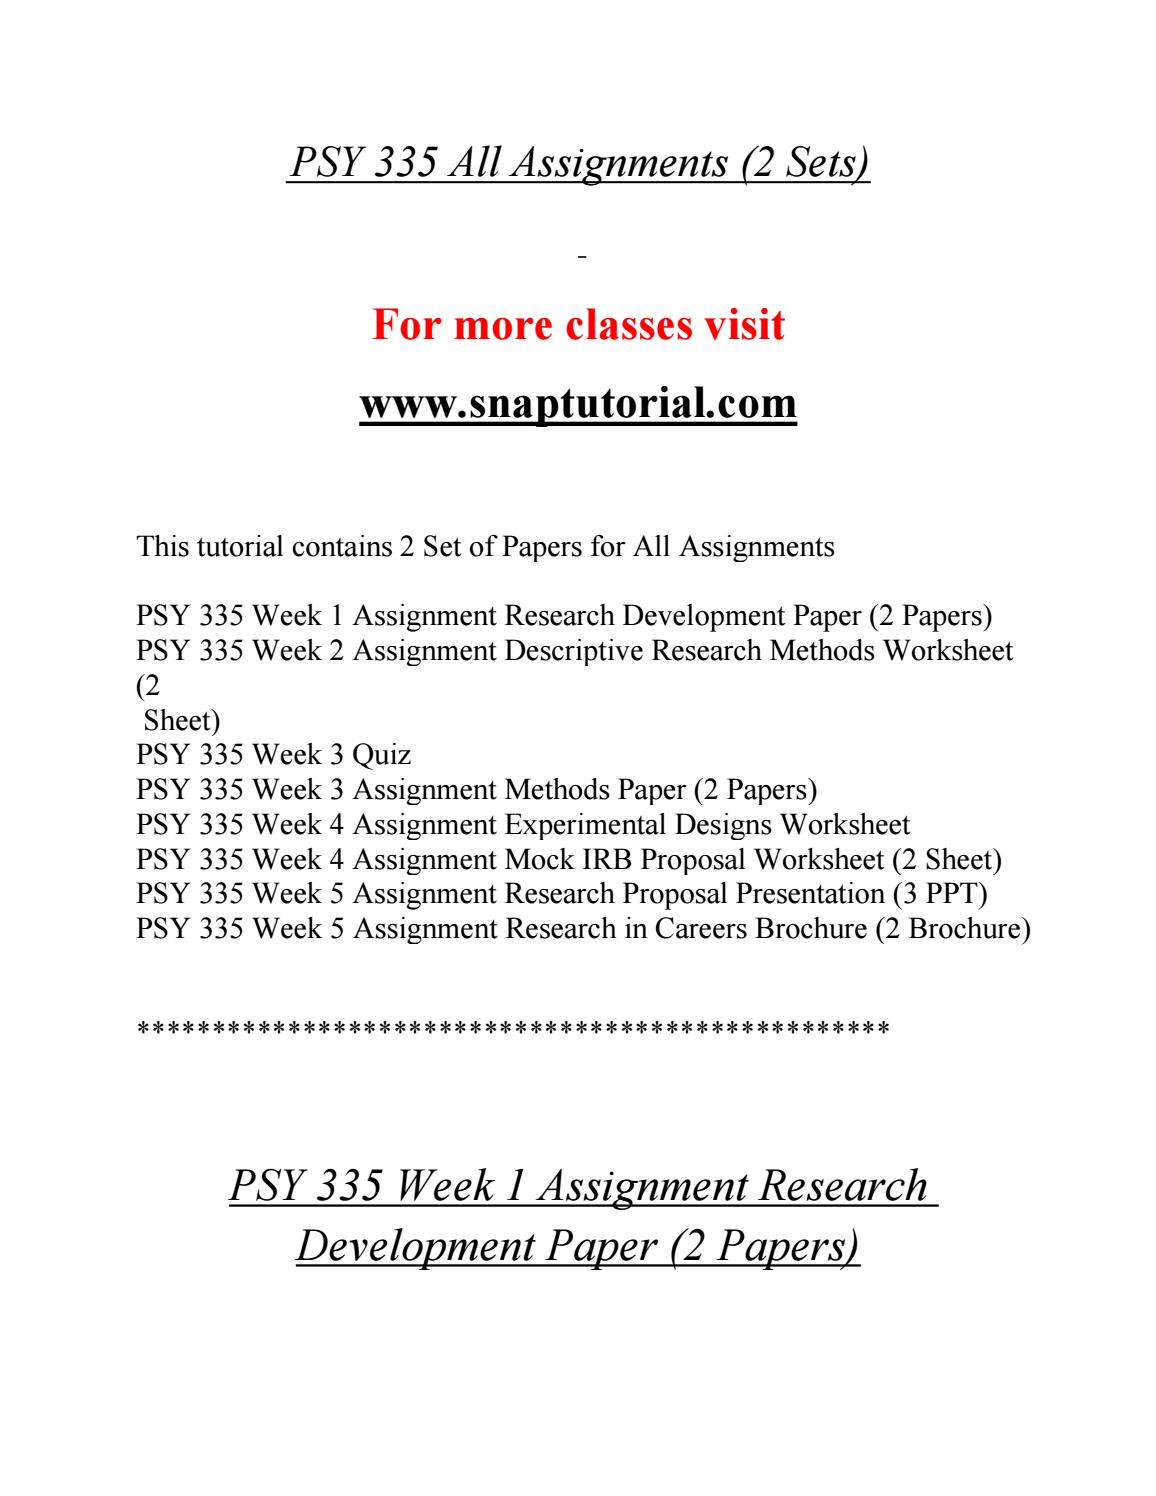 Experimental Design Worksheet Answers Psy 335 Enhance Teaching Snaptutorial by Harrisgeorg65